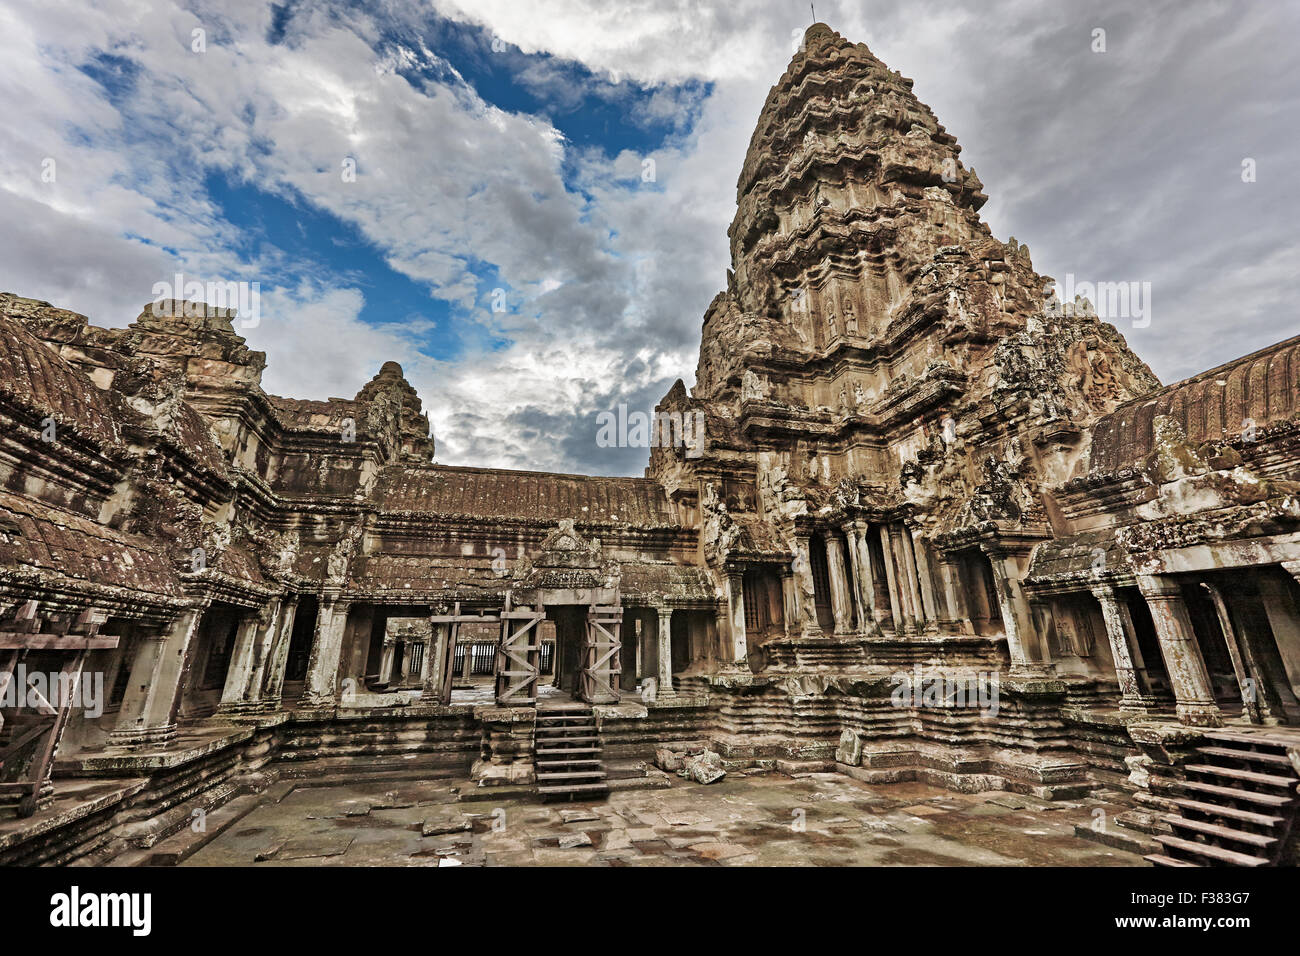 Top level of Angkor Wat temple. Angkor Archaeological Park, Siem Reap Province, Cambodia. - Stock Image